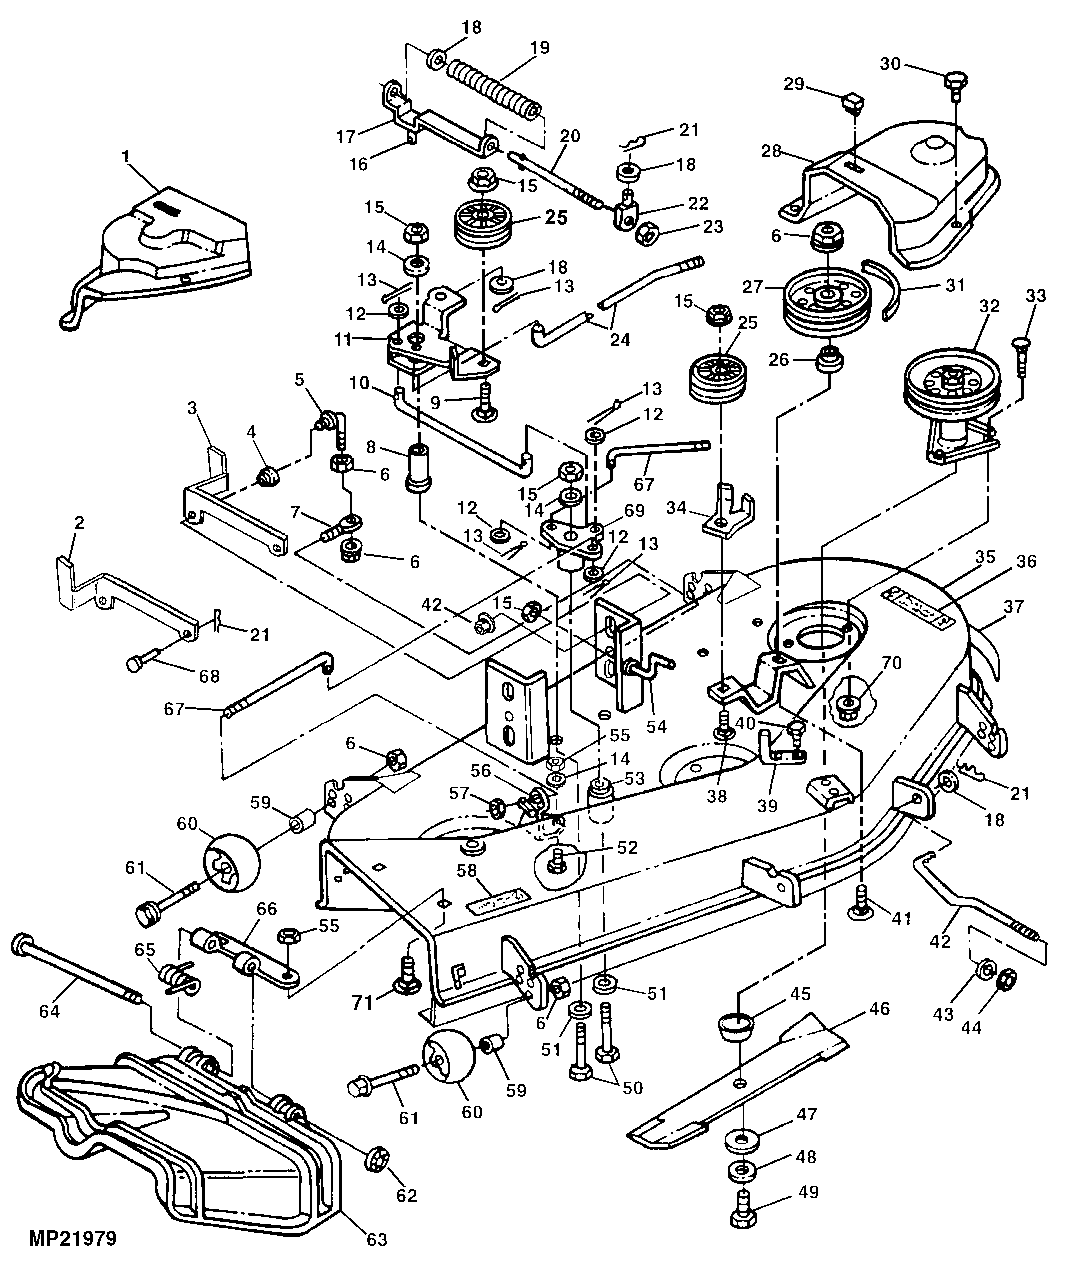 john deere la110 engine diagram